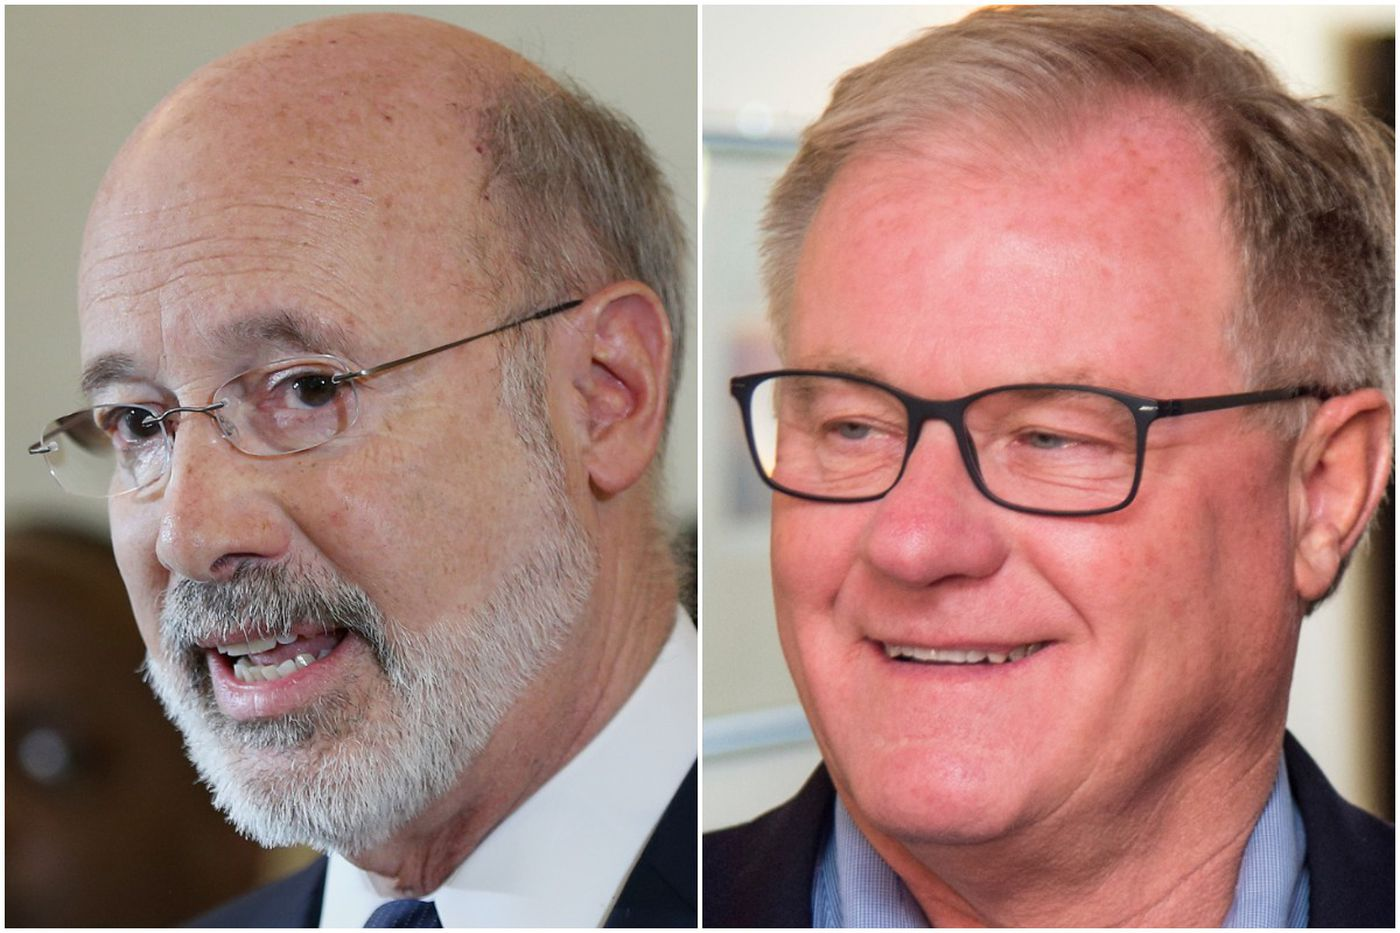 Is Scott Wagner Harrisburg's 'very worst'? Does Tom Wolf want to kill rural schools? Only in the current silly season | John Baer